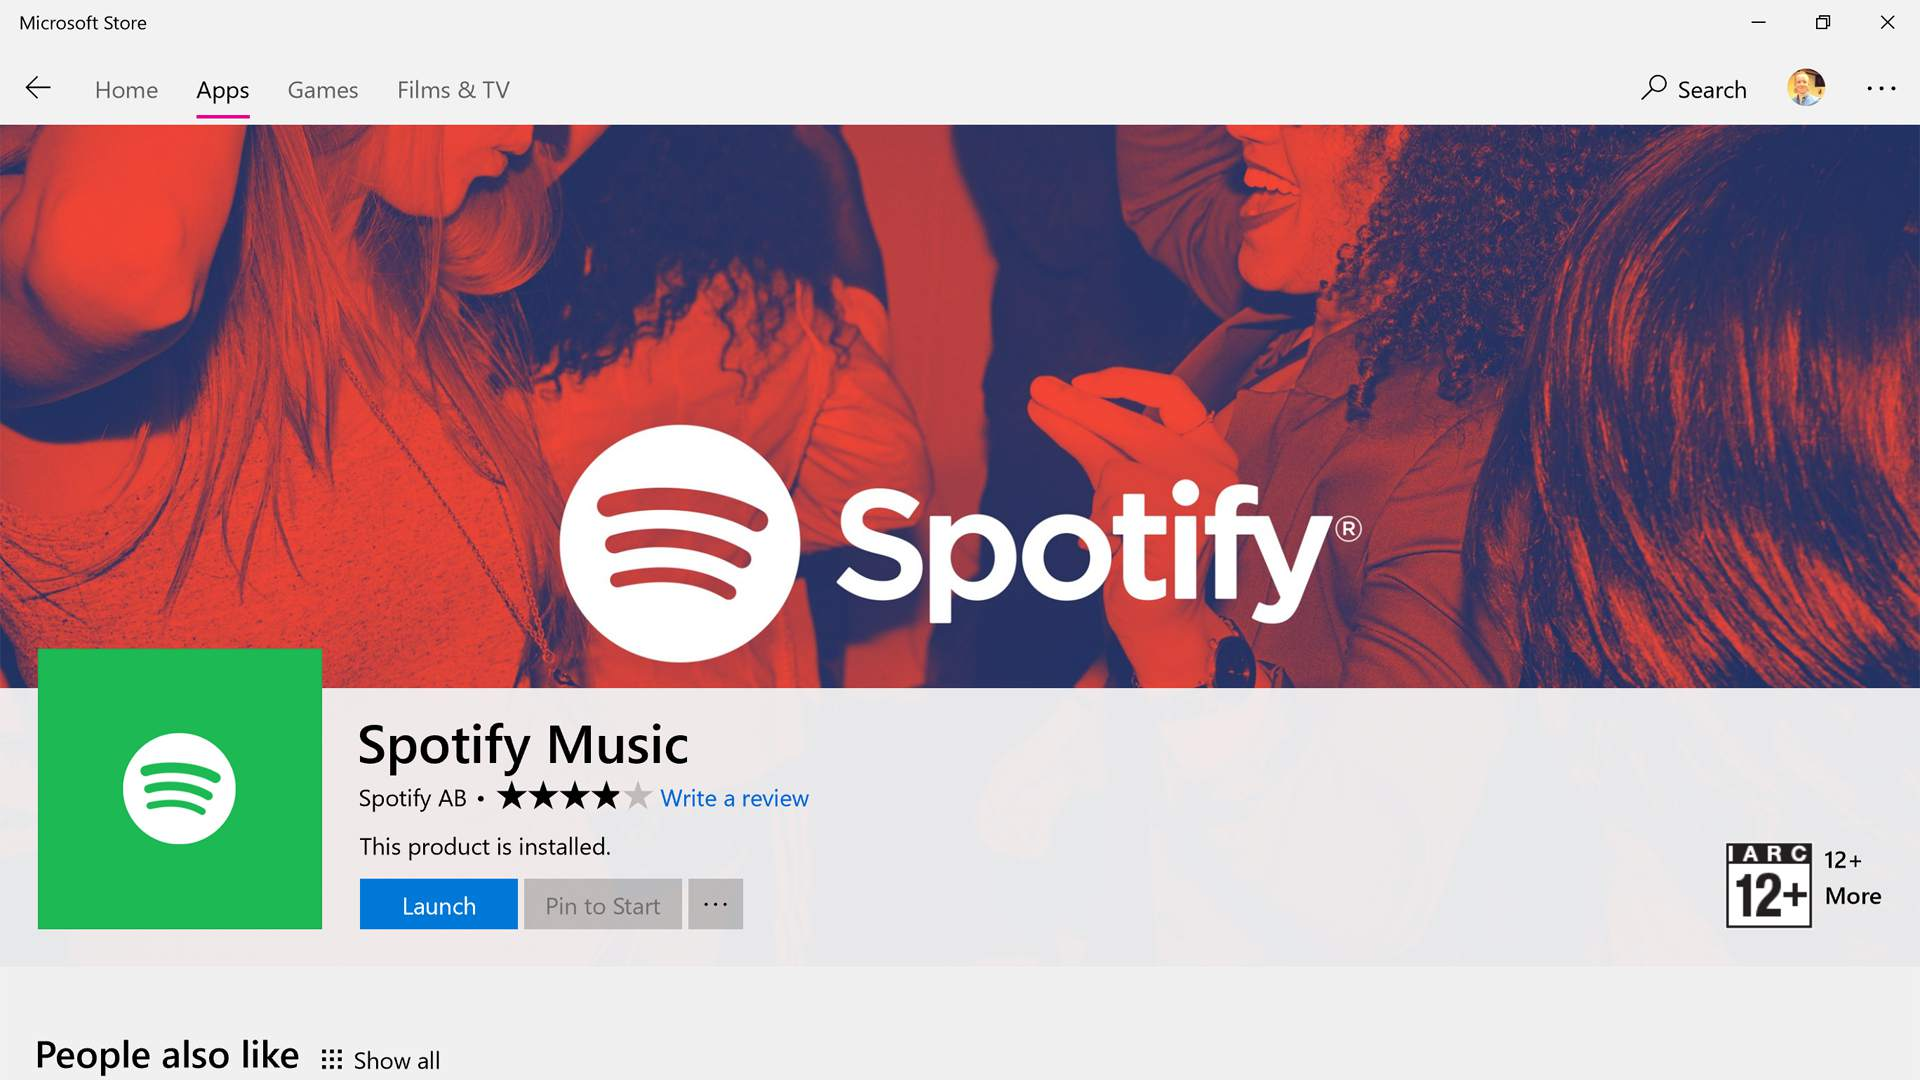 How to Use Spotify on Windows 10 PCs and Tablets